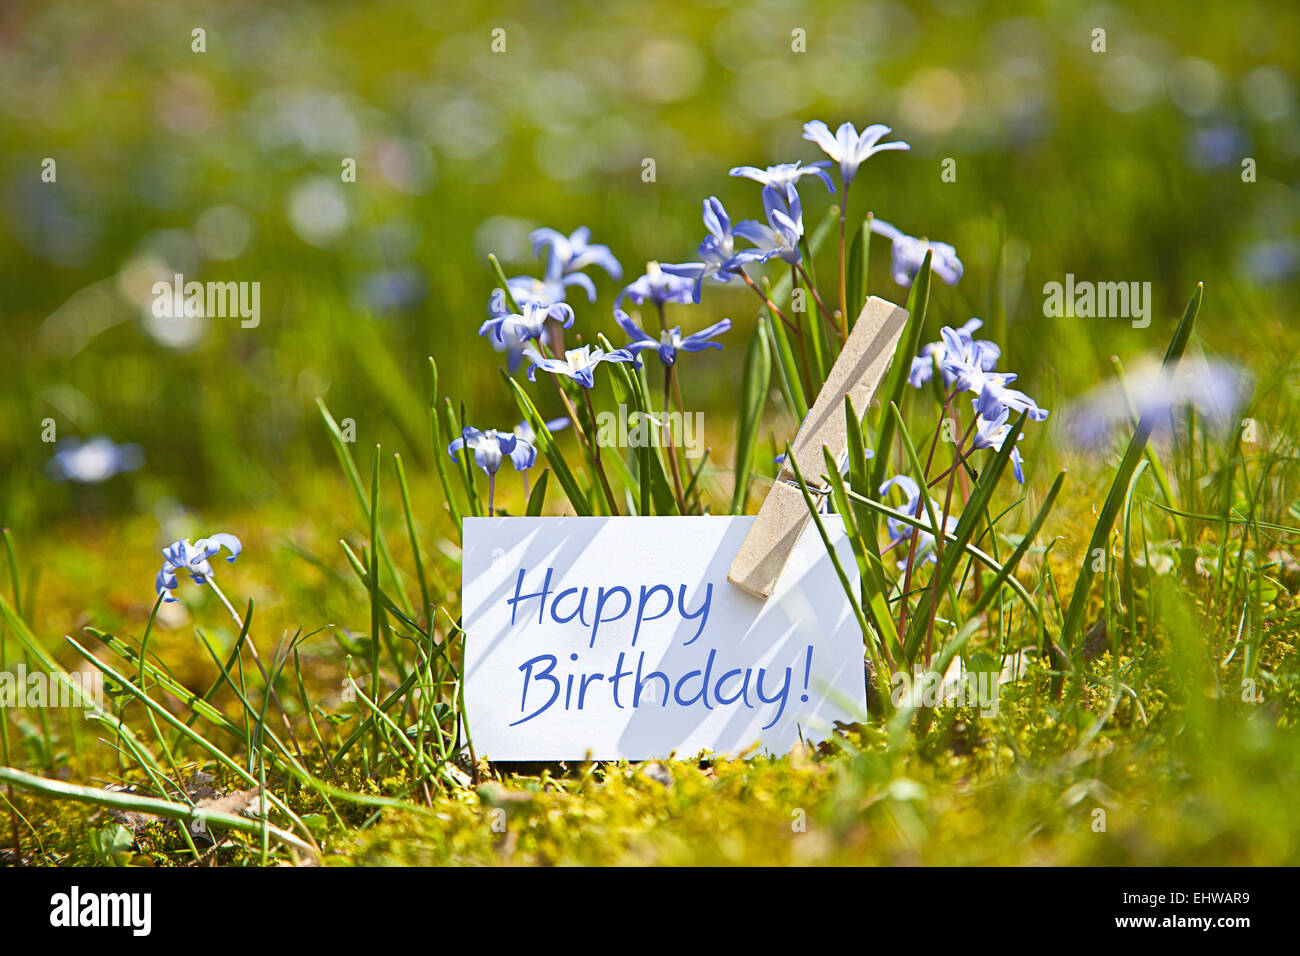 Happy Birthday With Spring Flowers Stock Photo 79847917 Alamy